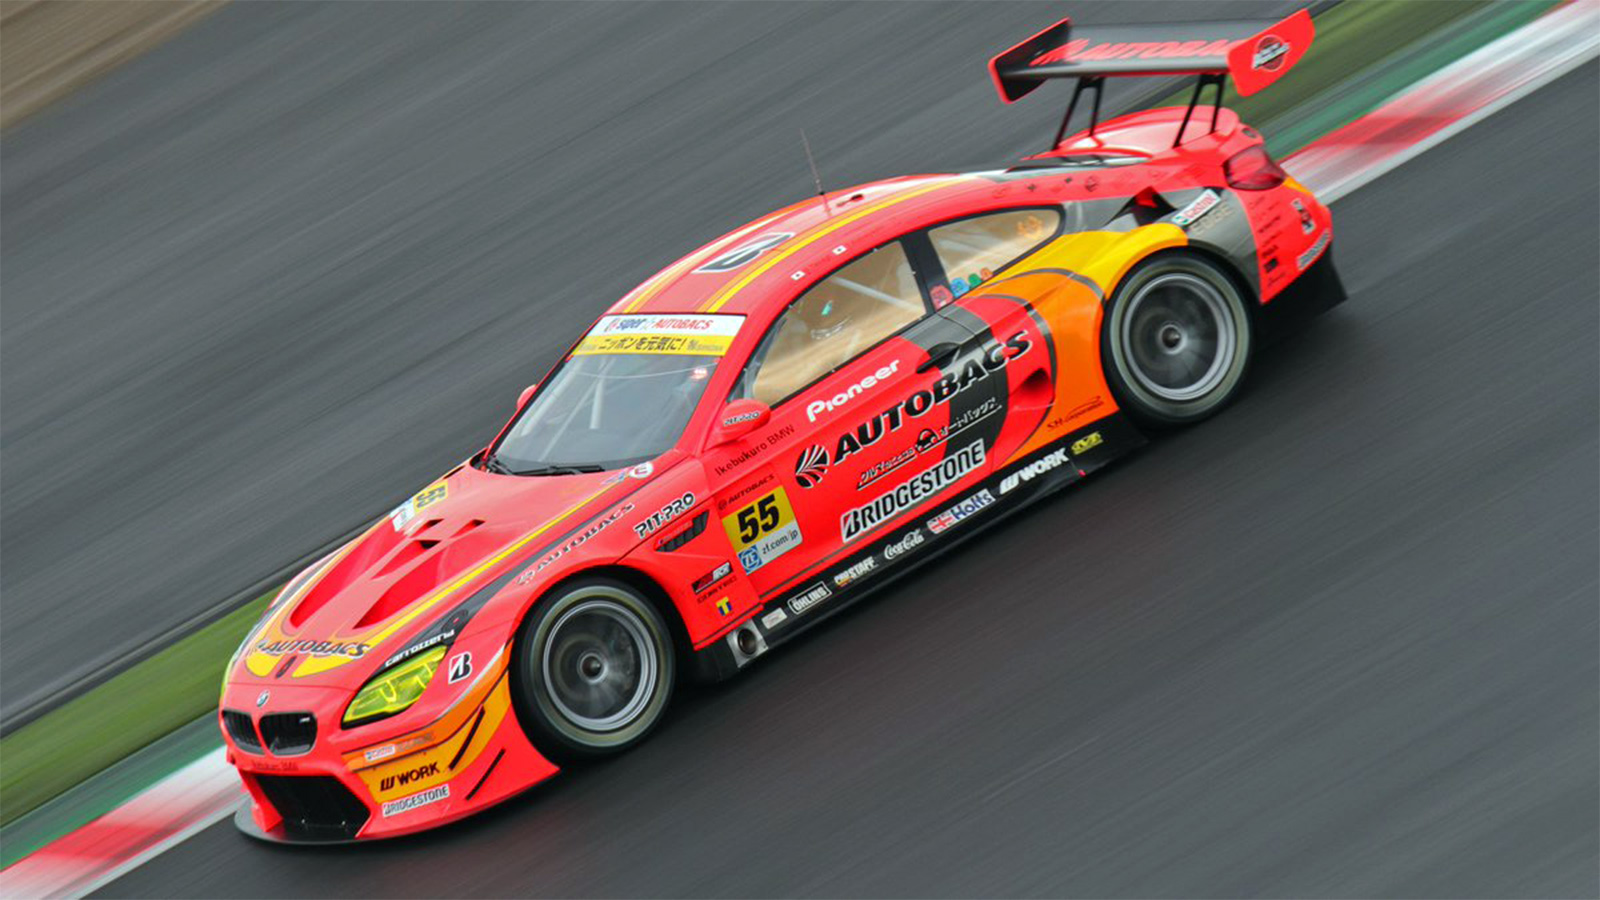 Sean Walkinshaw graduates from Blancpain endurance racing to Super GT